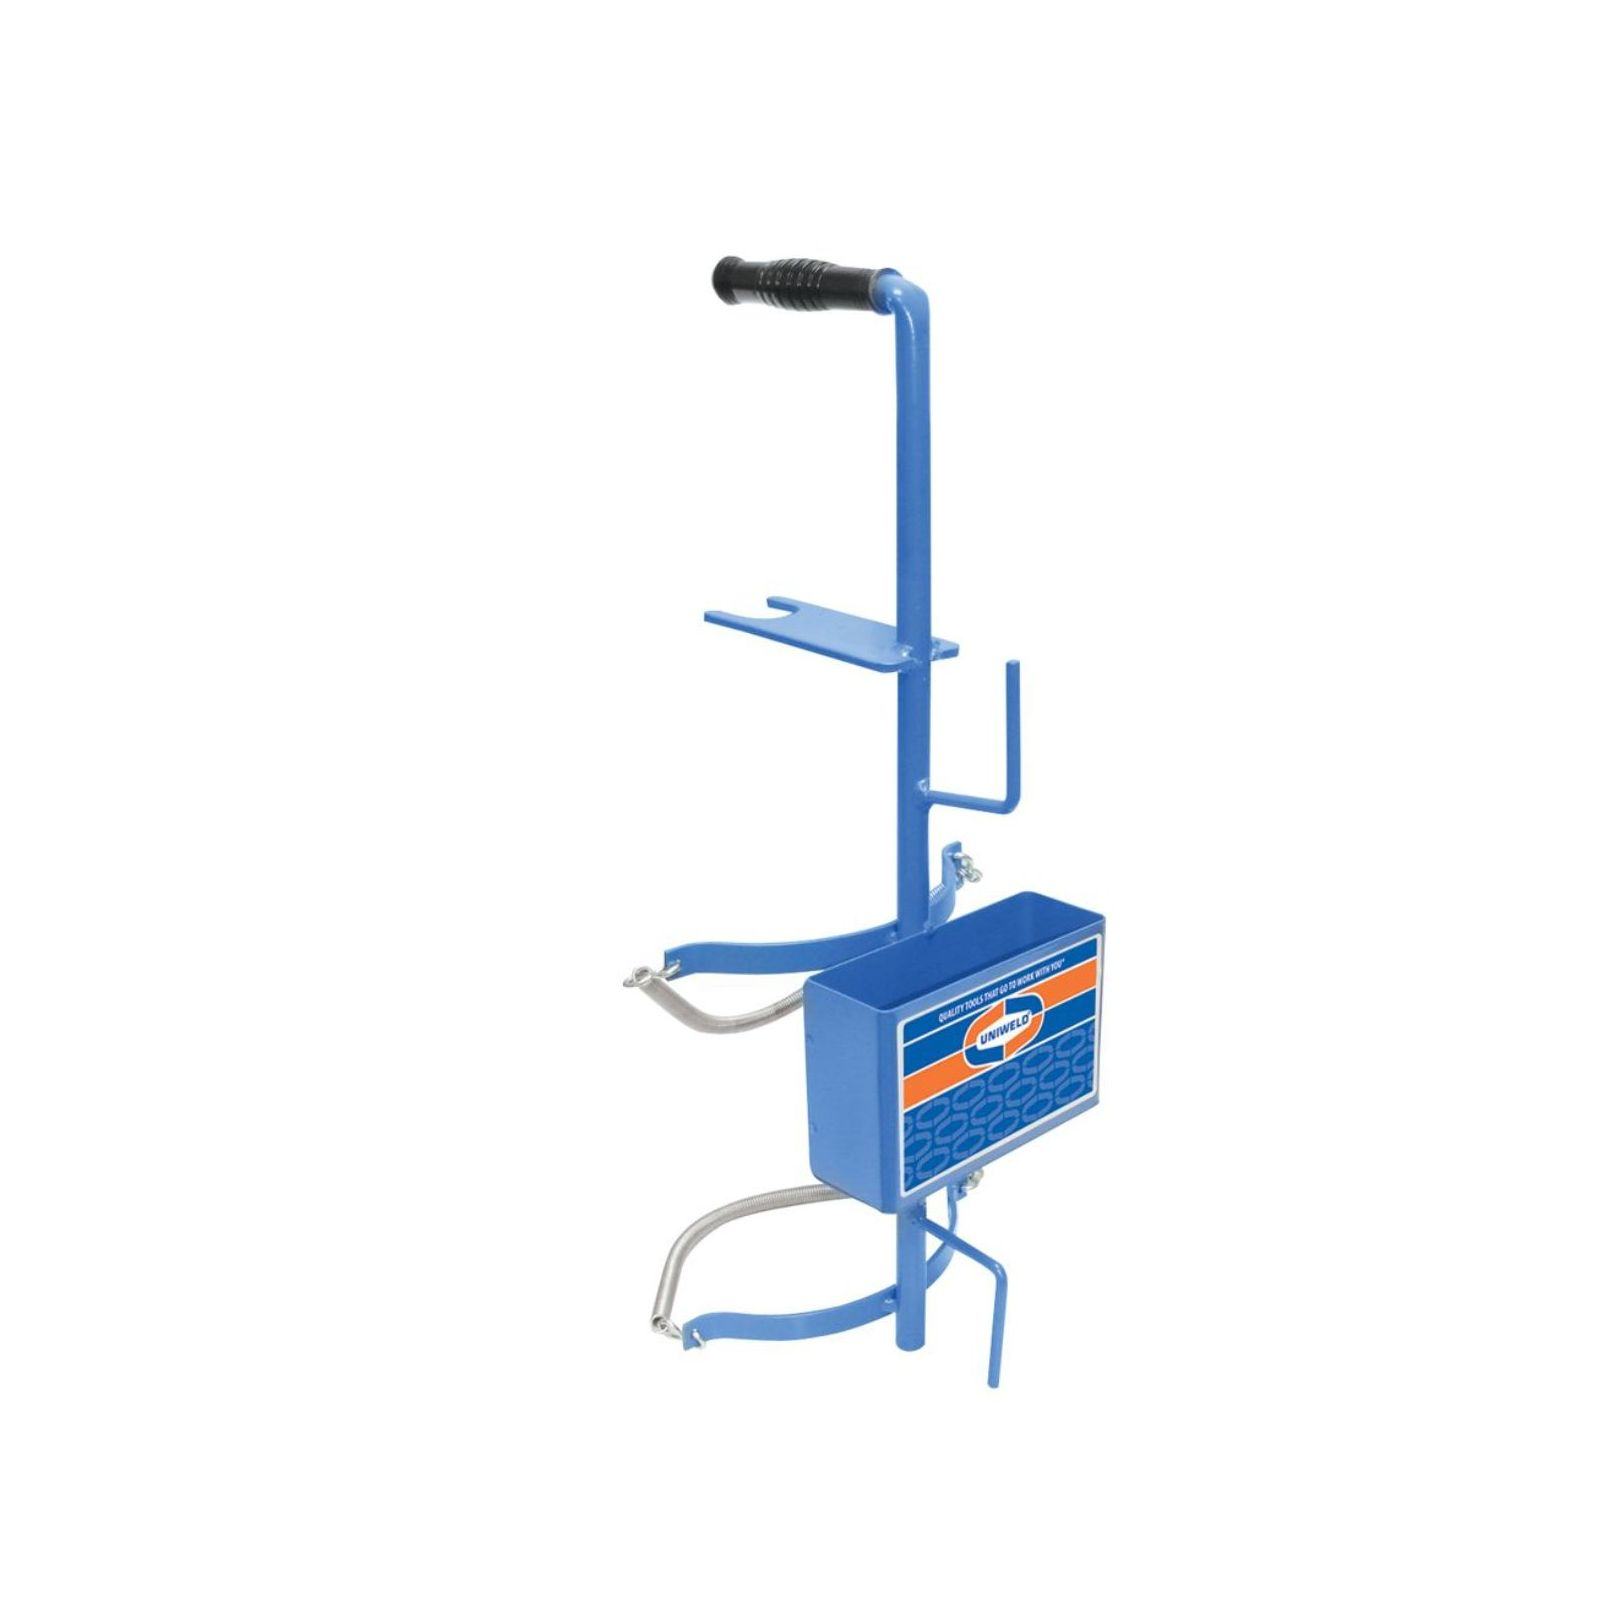 Uniweld 516 - Nitrogen / CO2 Carrying Stand for (1) 40 / 55 cu. ft. Nitrogen Tank or (1) 10 lb. CO2 Tank.